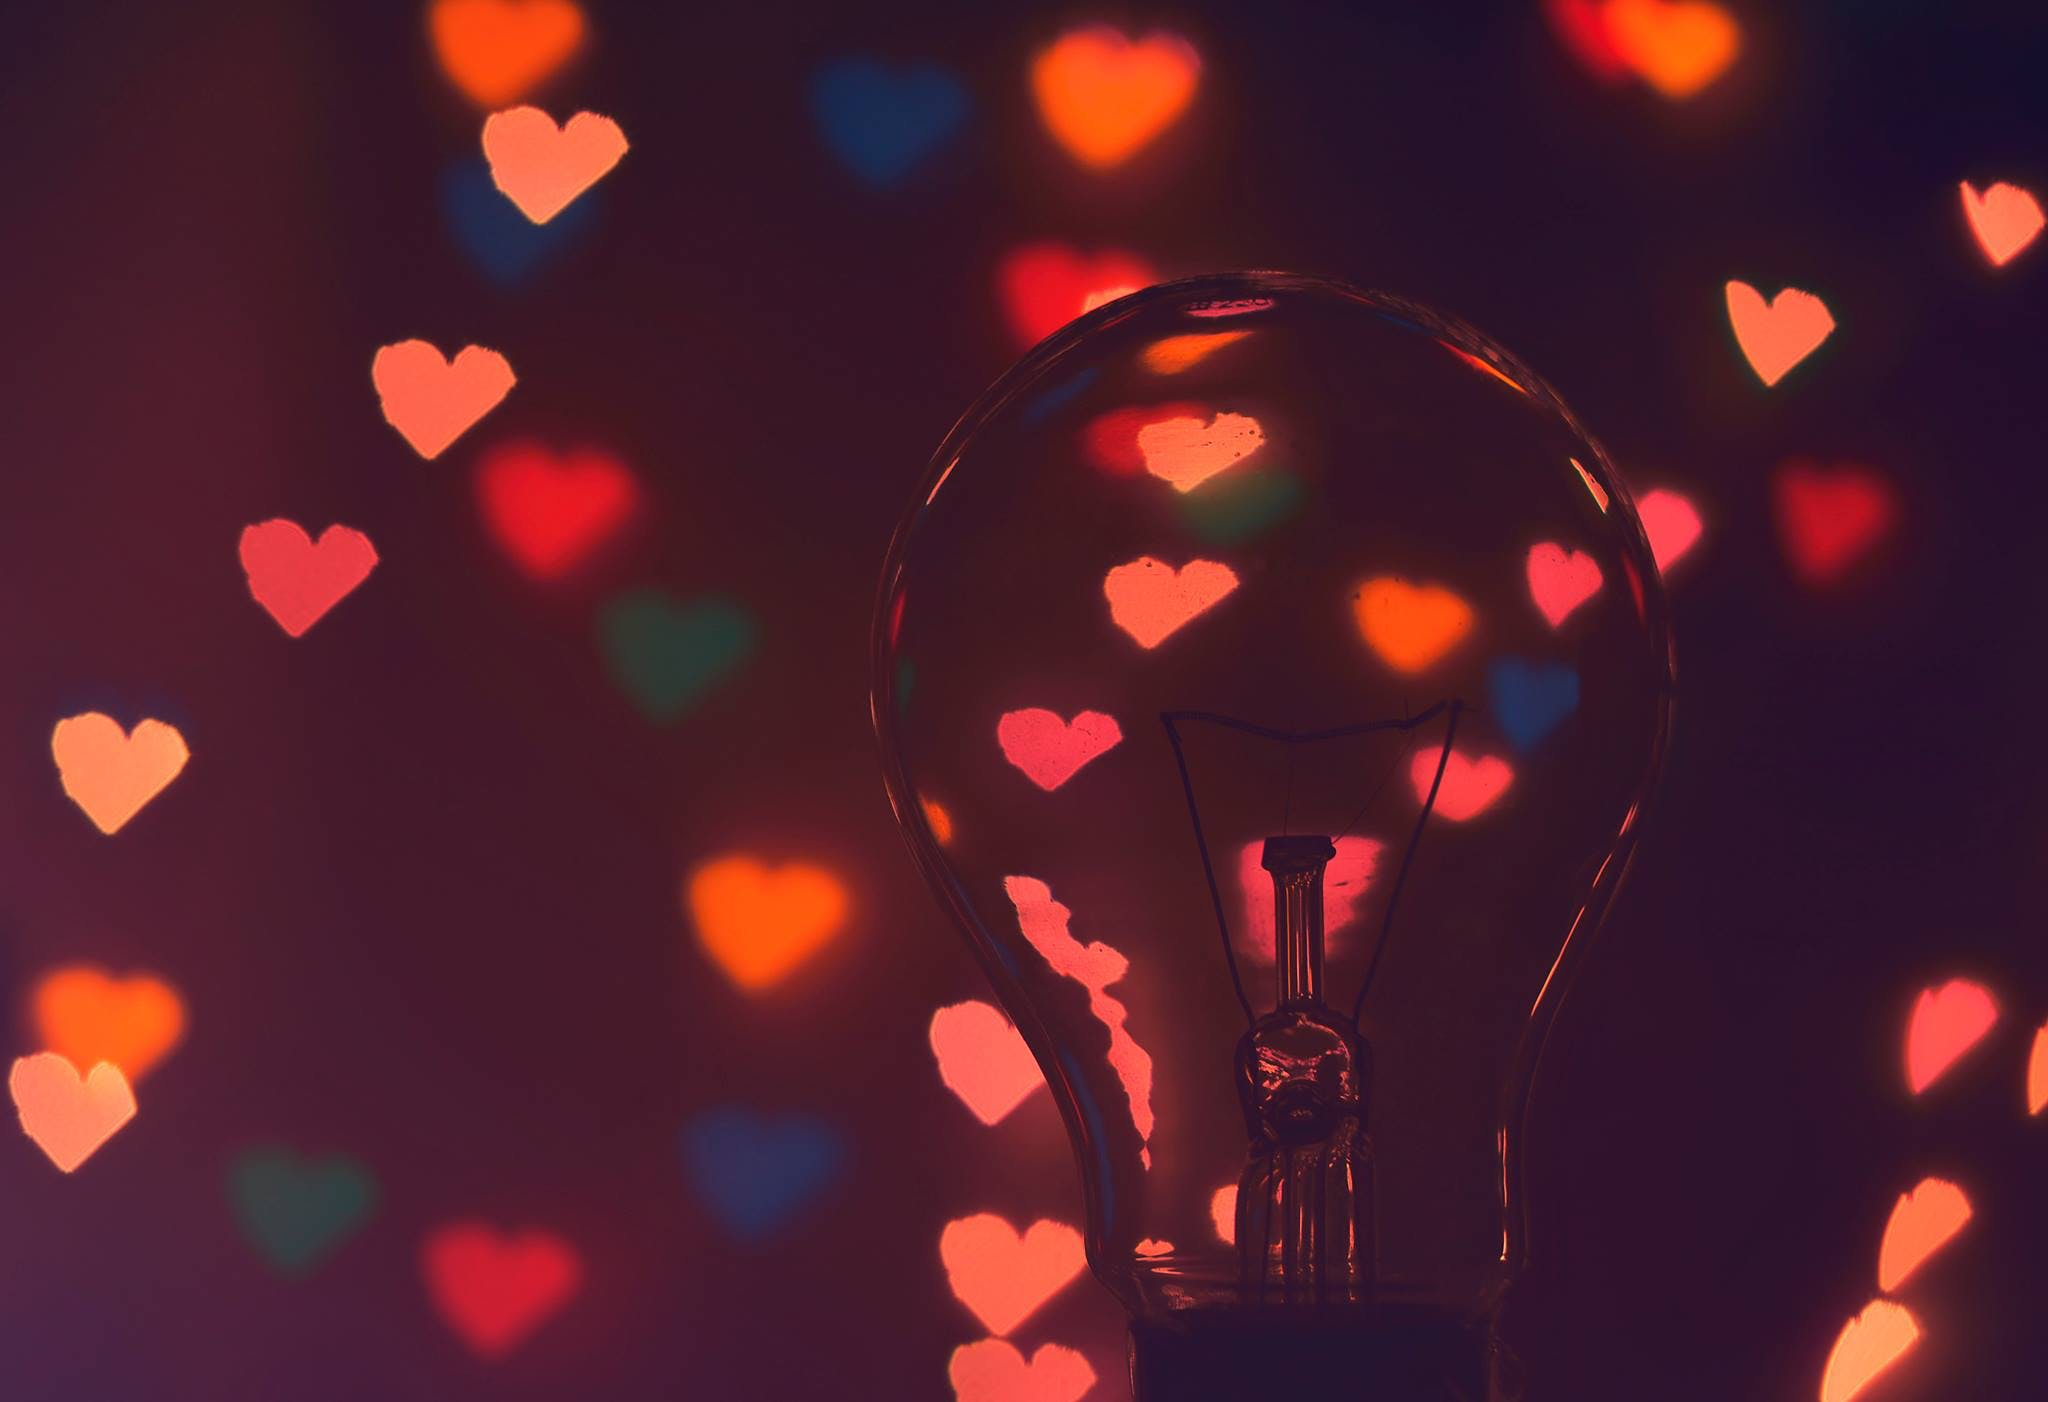 Photo of Illuminated Hearts Around the Light Bulb